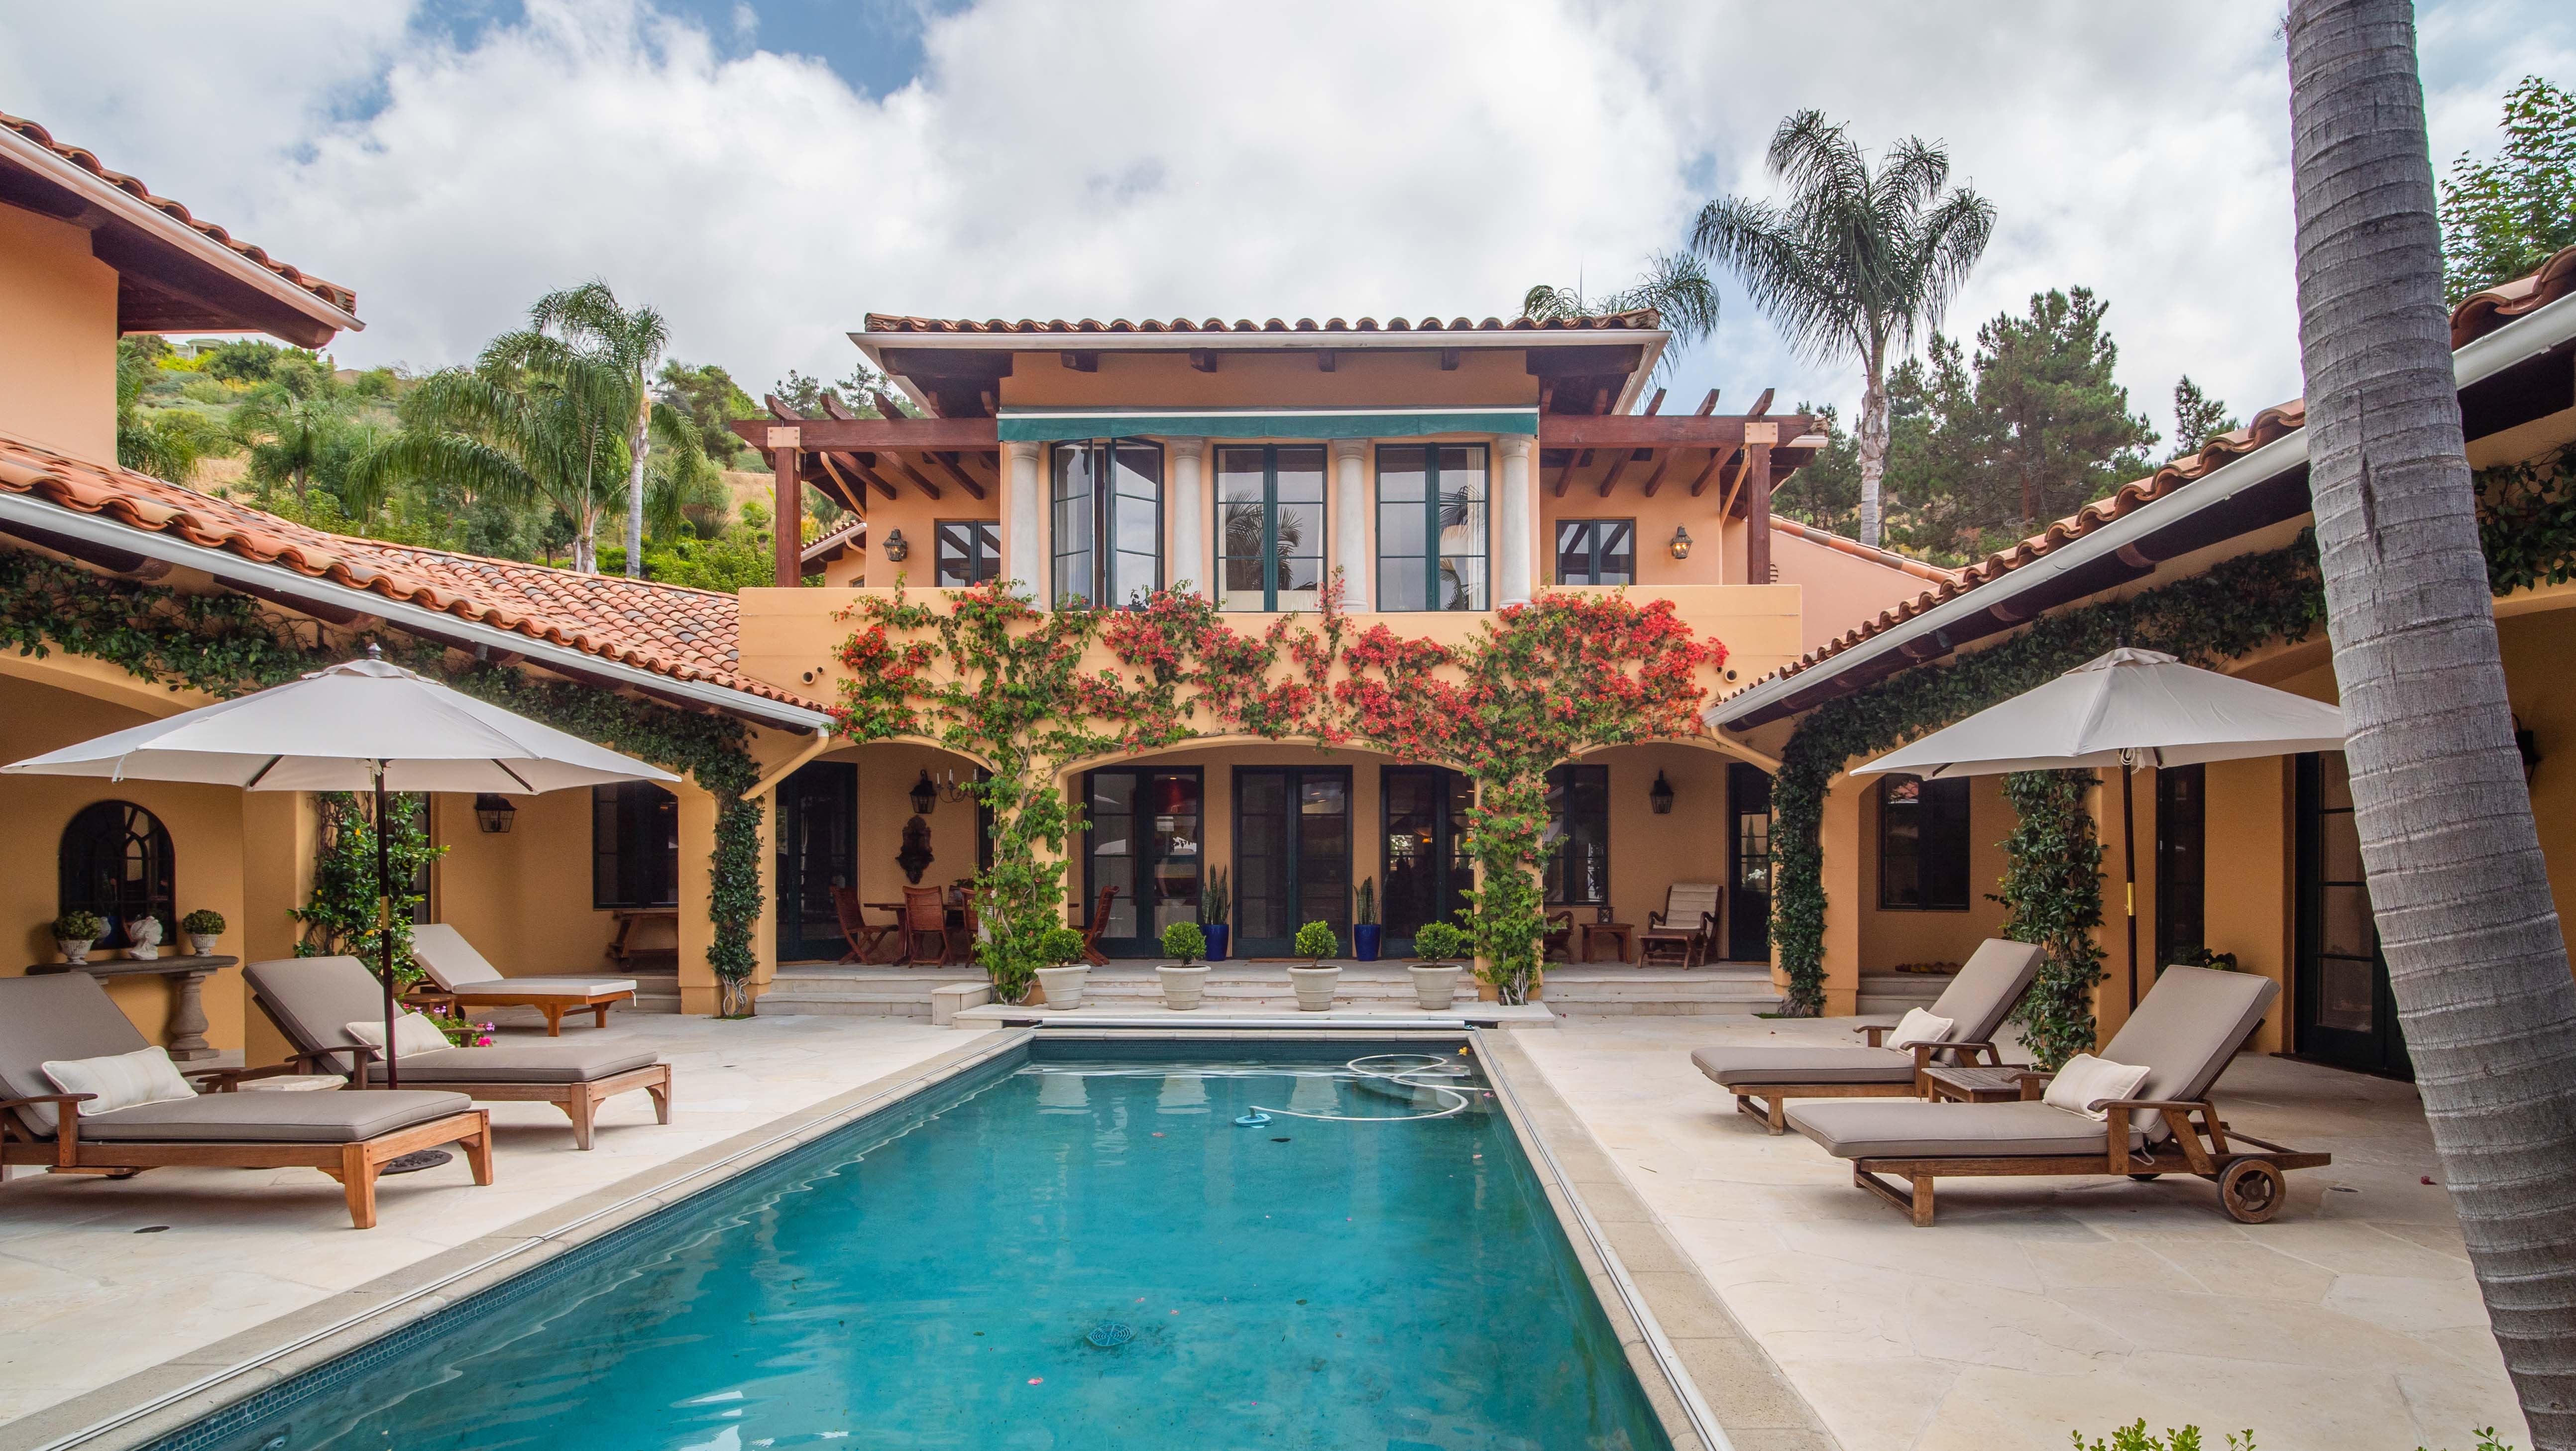 Ray Liotta's former Pacific Palisades Estate